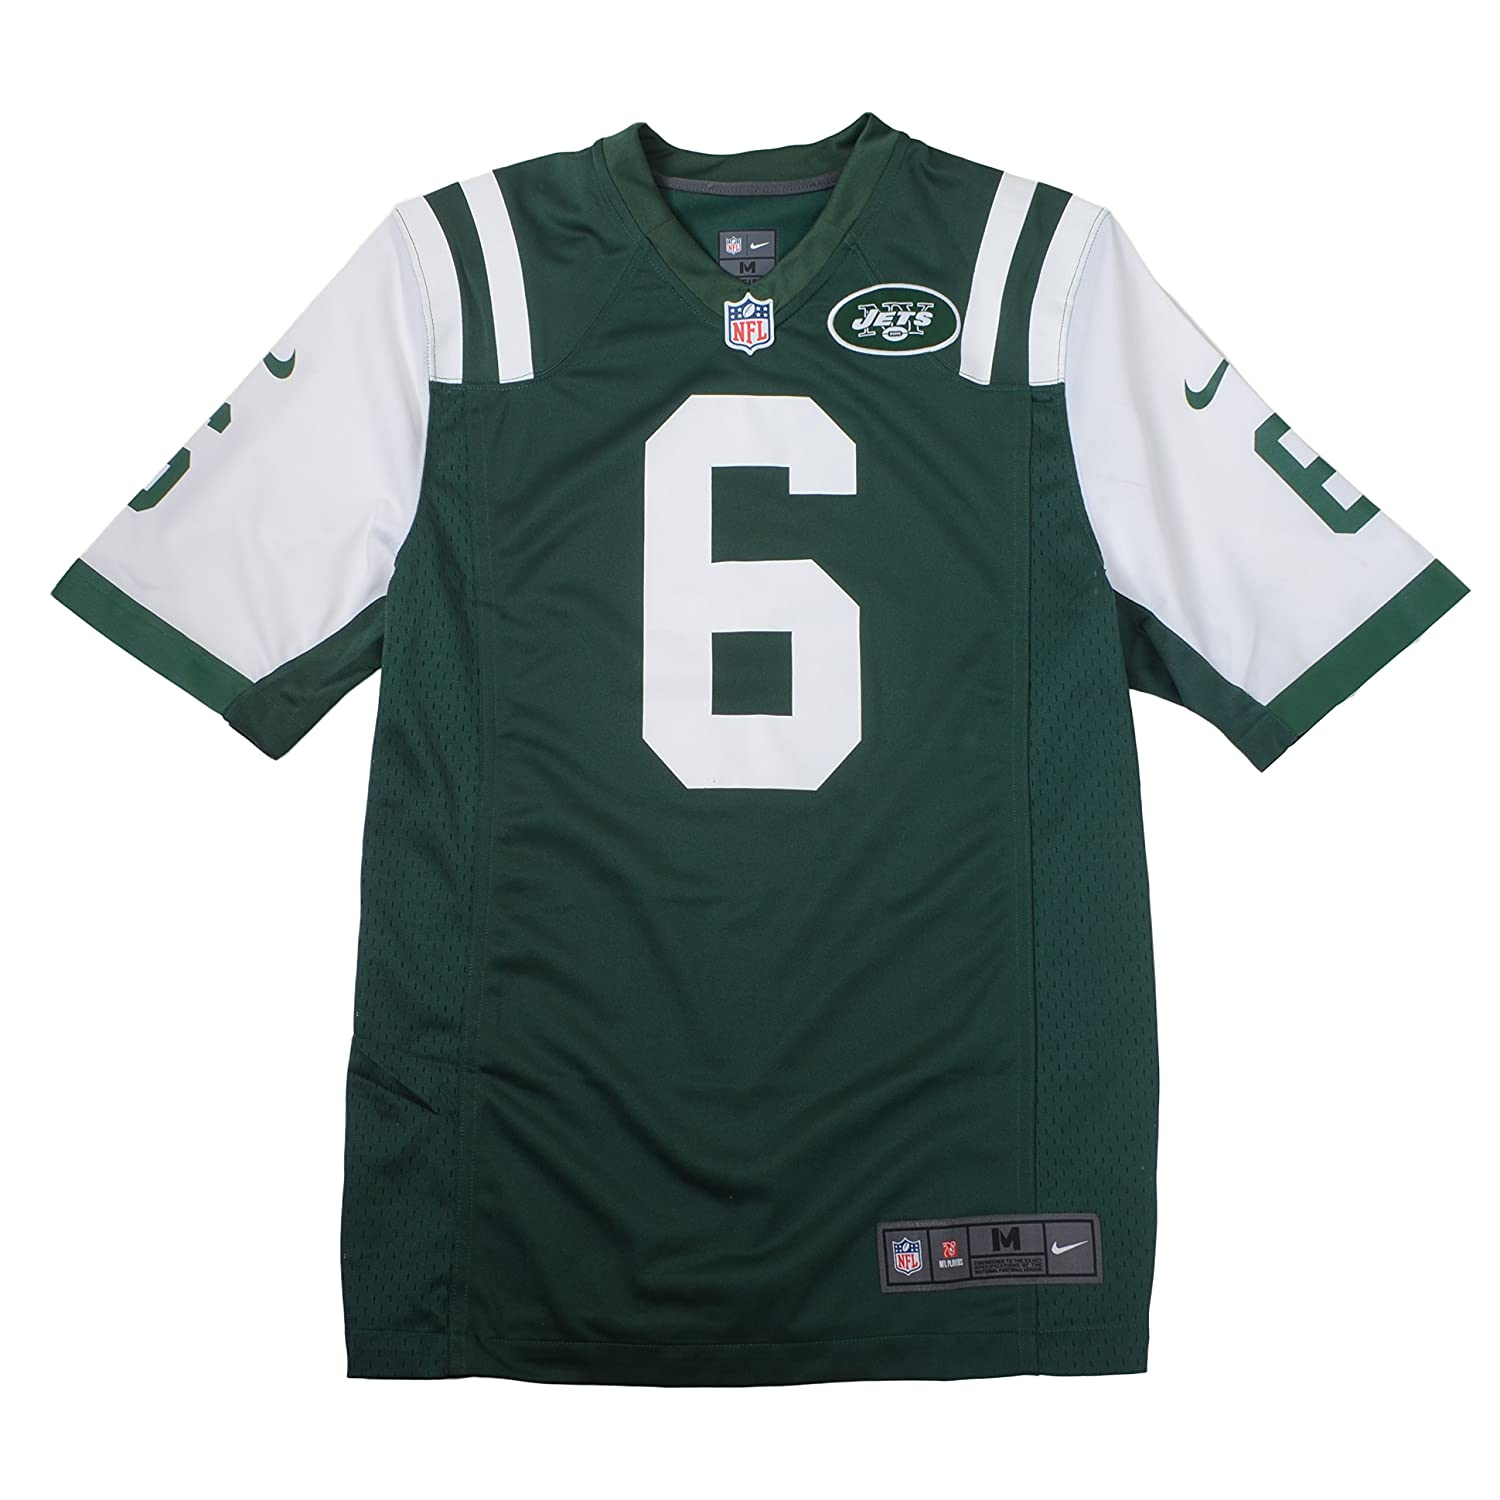 4ad3b45e2c3 Amazon.com : Men's Nike NFL Mark Sanchez Home Game Replica New York Jets  Jersey Size Medium : Sports Fan Jerseys : Clothing